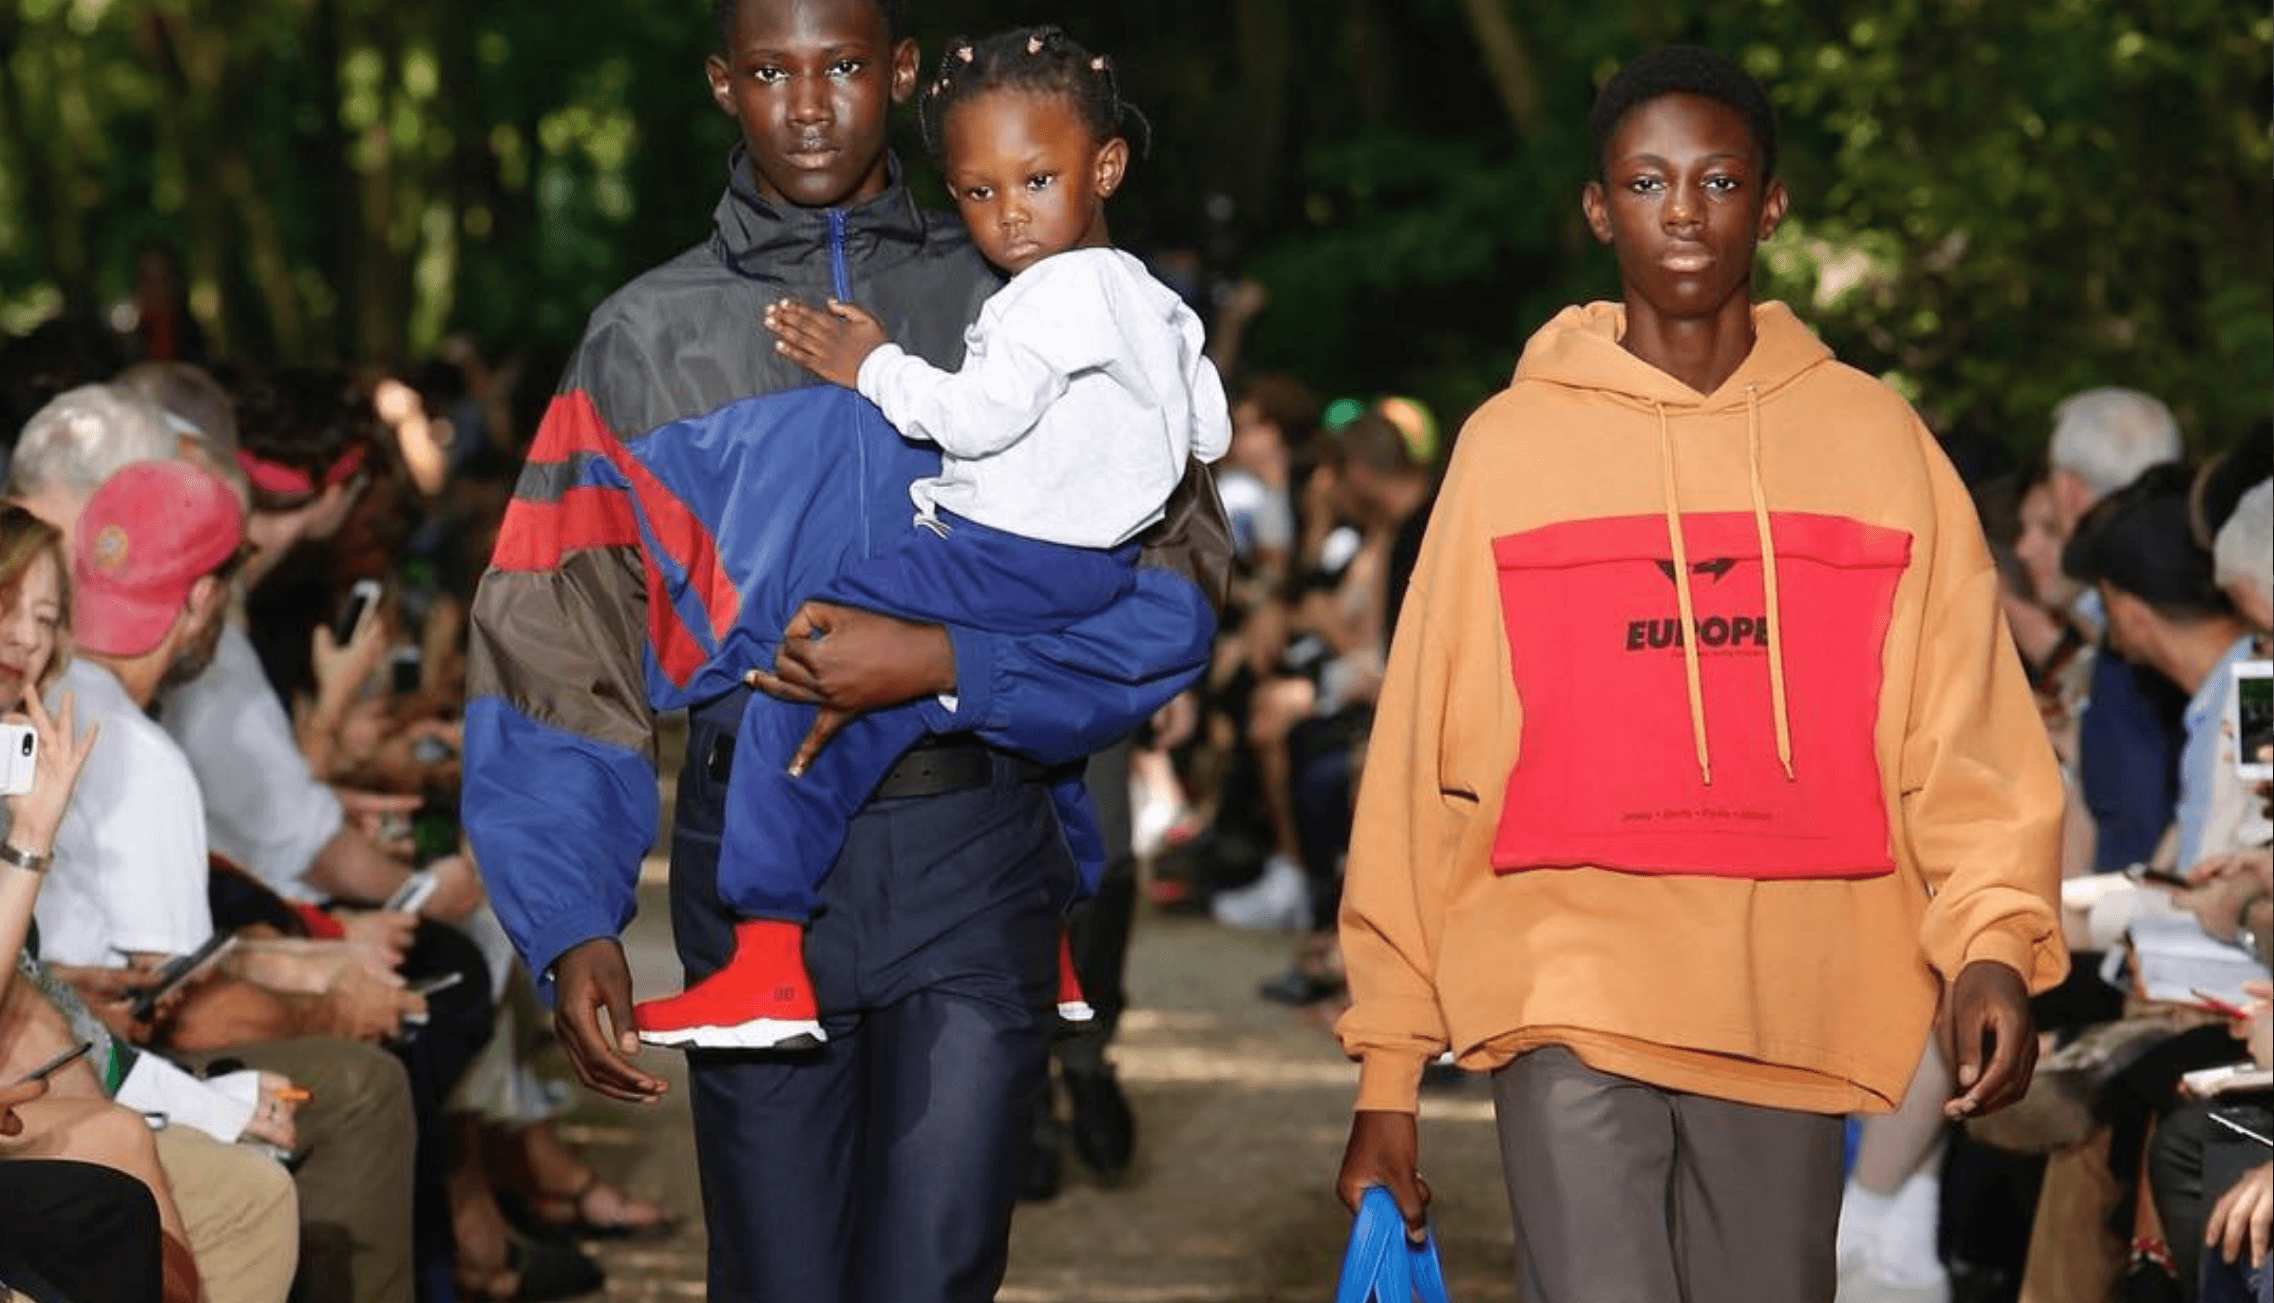 Op-Ed: Is Balenciaga Socially Irresponsible? - features-oped, fashion - op-ed, Fashion, demna gvasalia, balenciaga, 2018